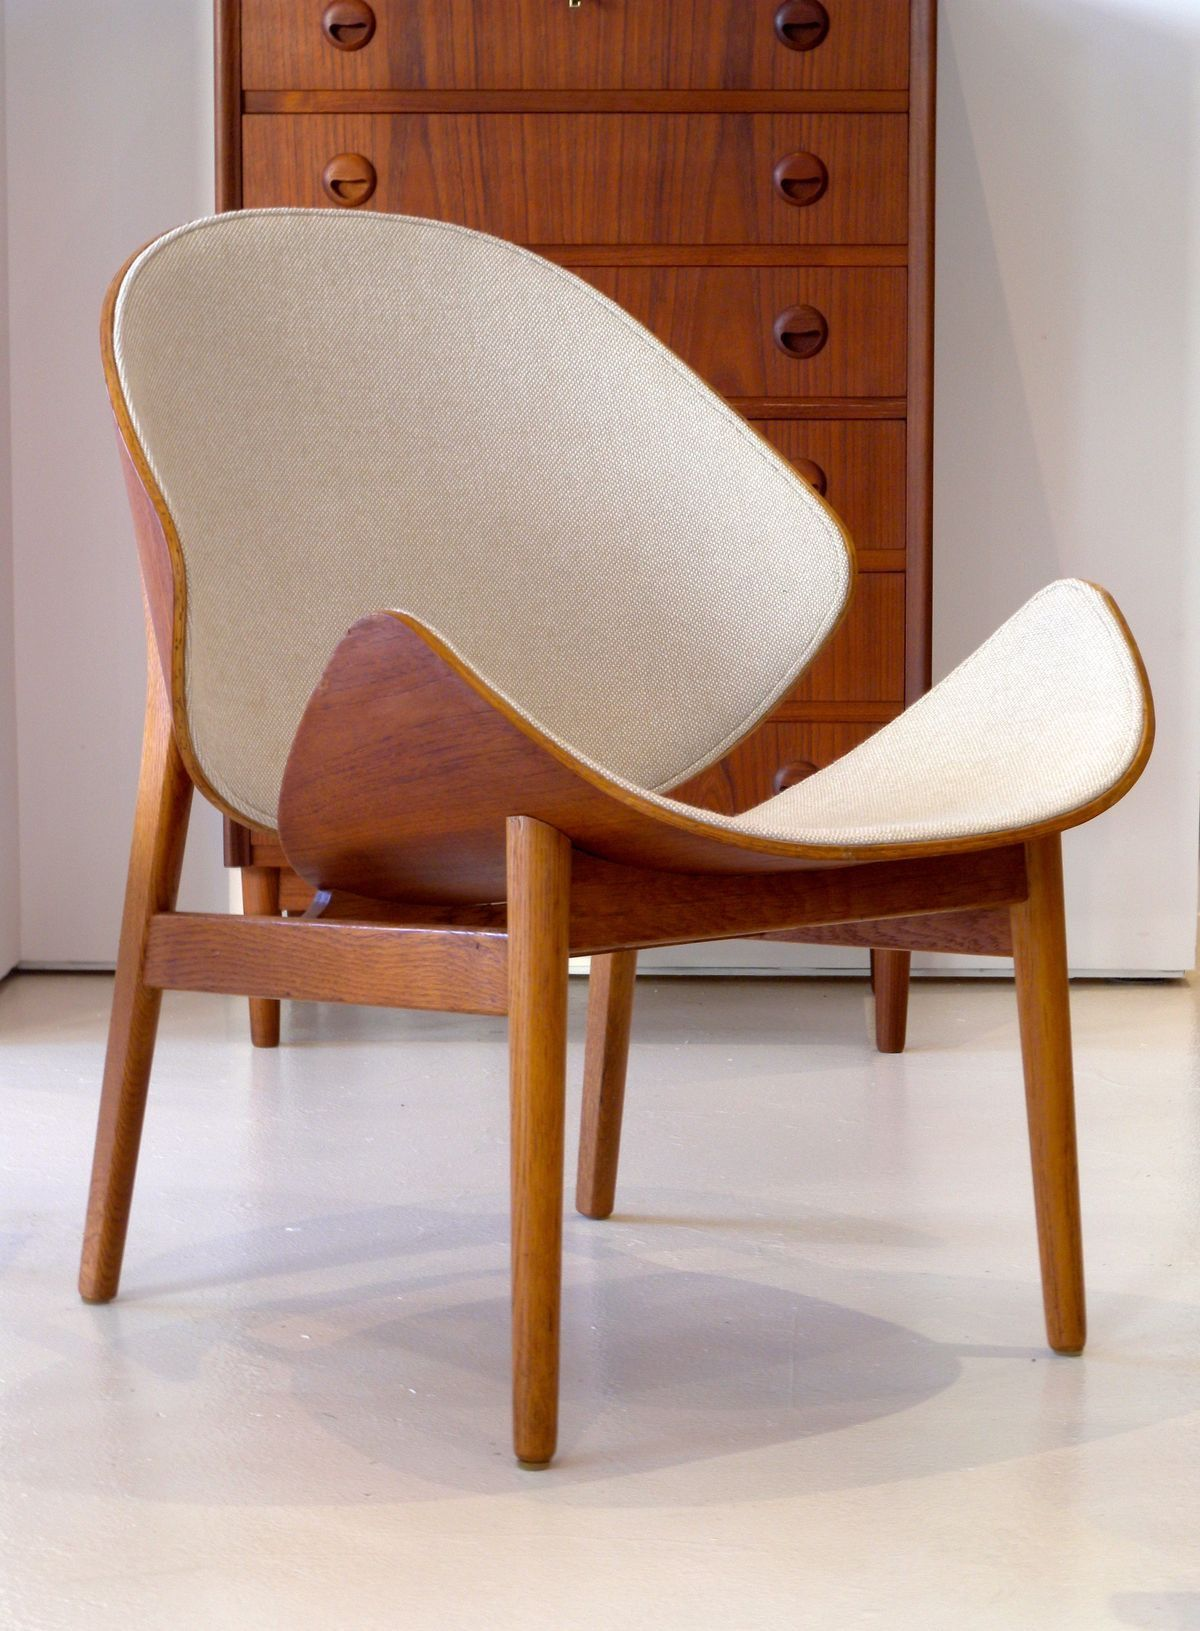 Different Architectural Styles Exterior House Designs: Hans Olsen Shell Chair #chair #seating #modern